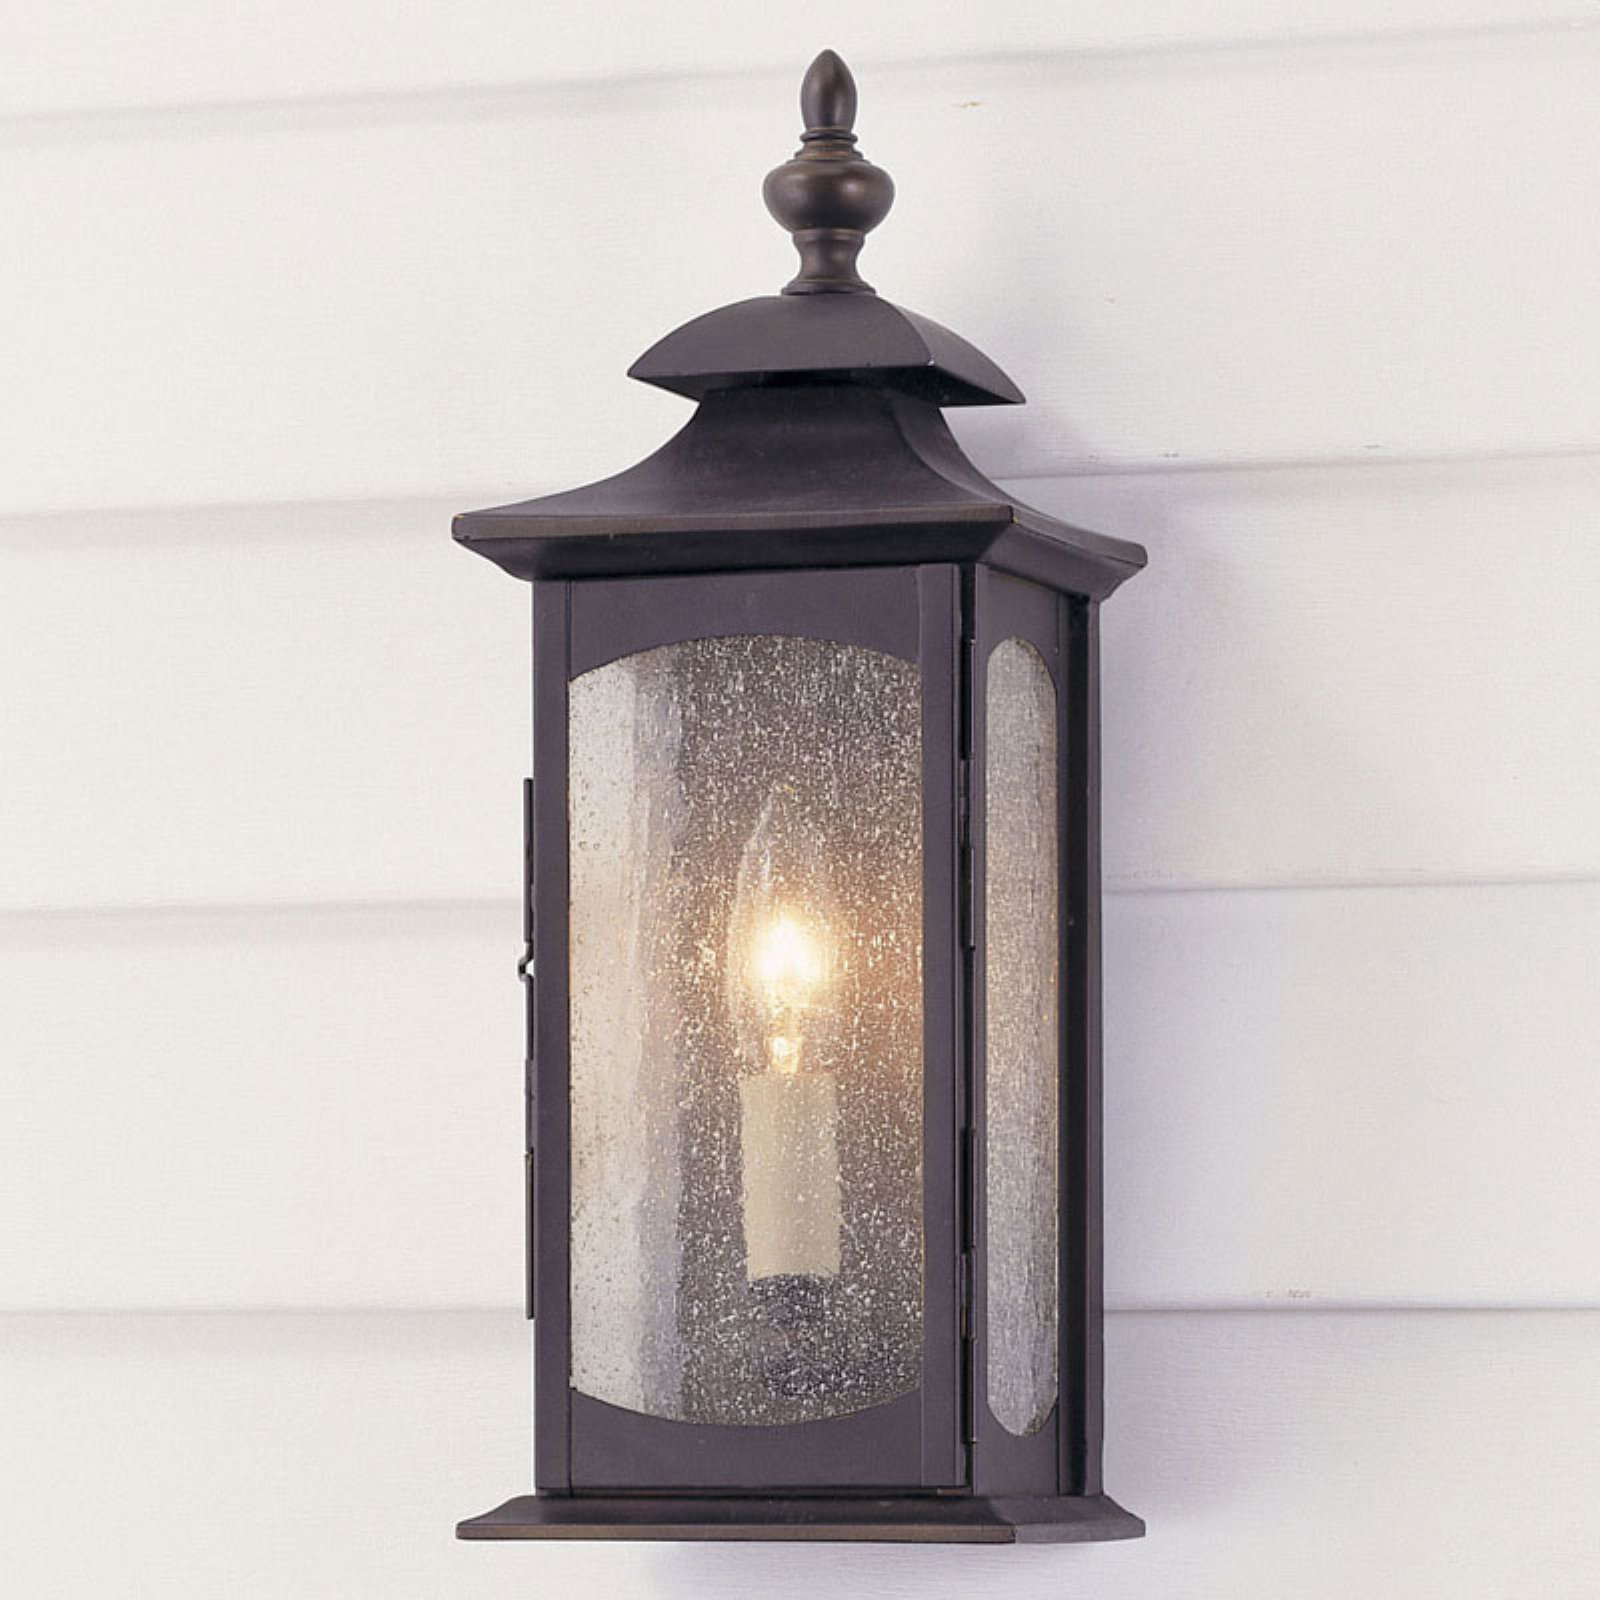 Feiss Market Square Outdoor Wall Lantern - 14H in. Oil Rubbed Bronze